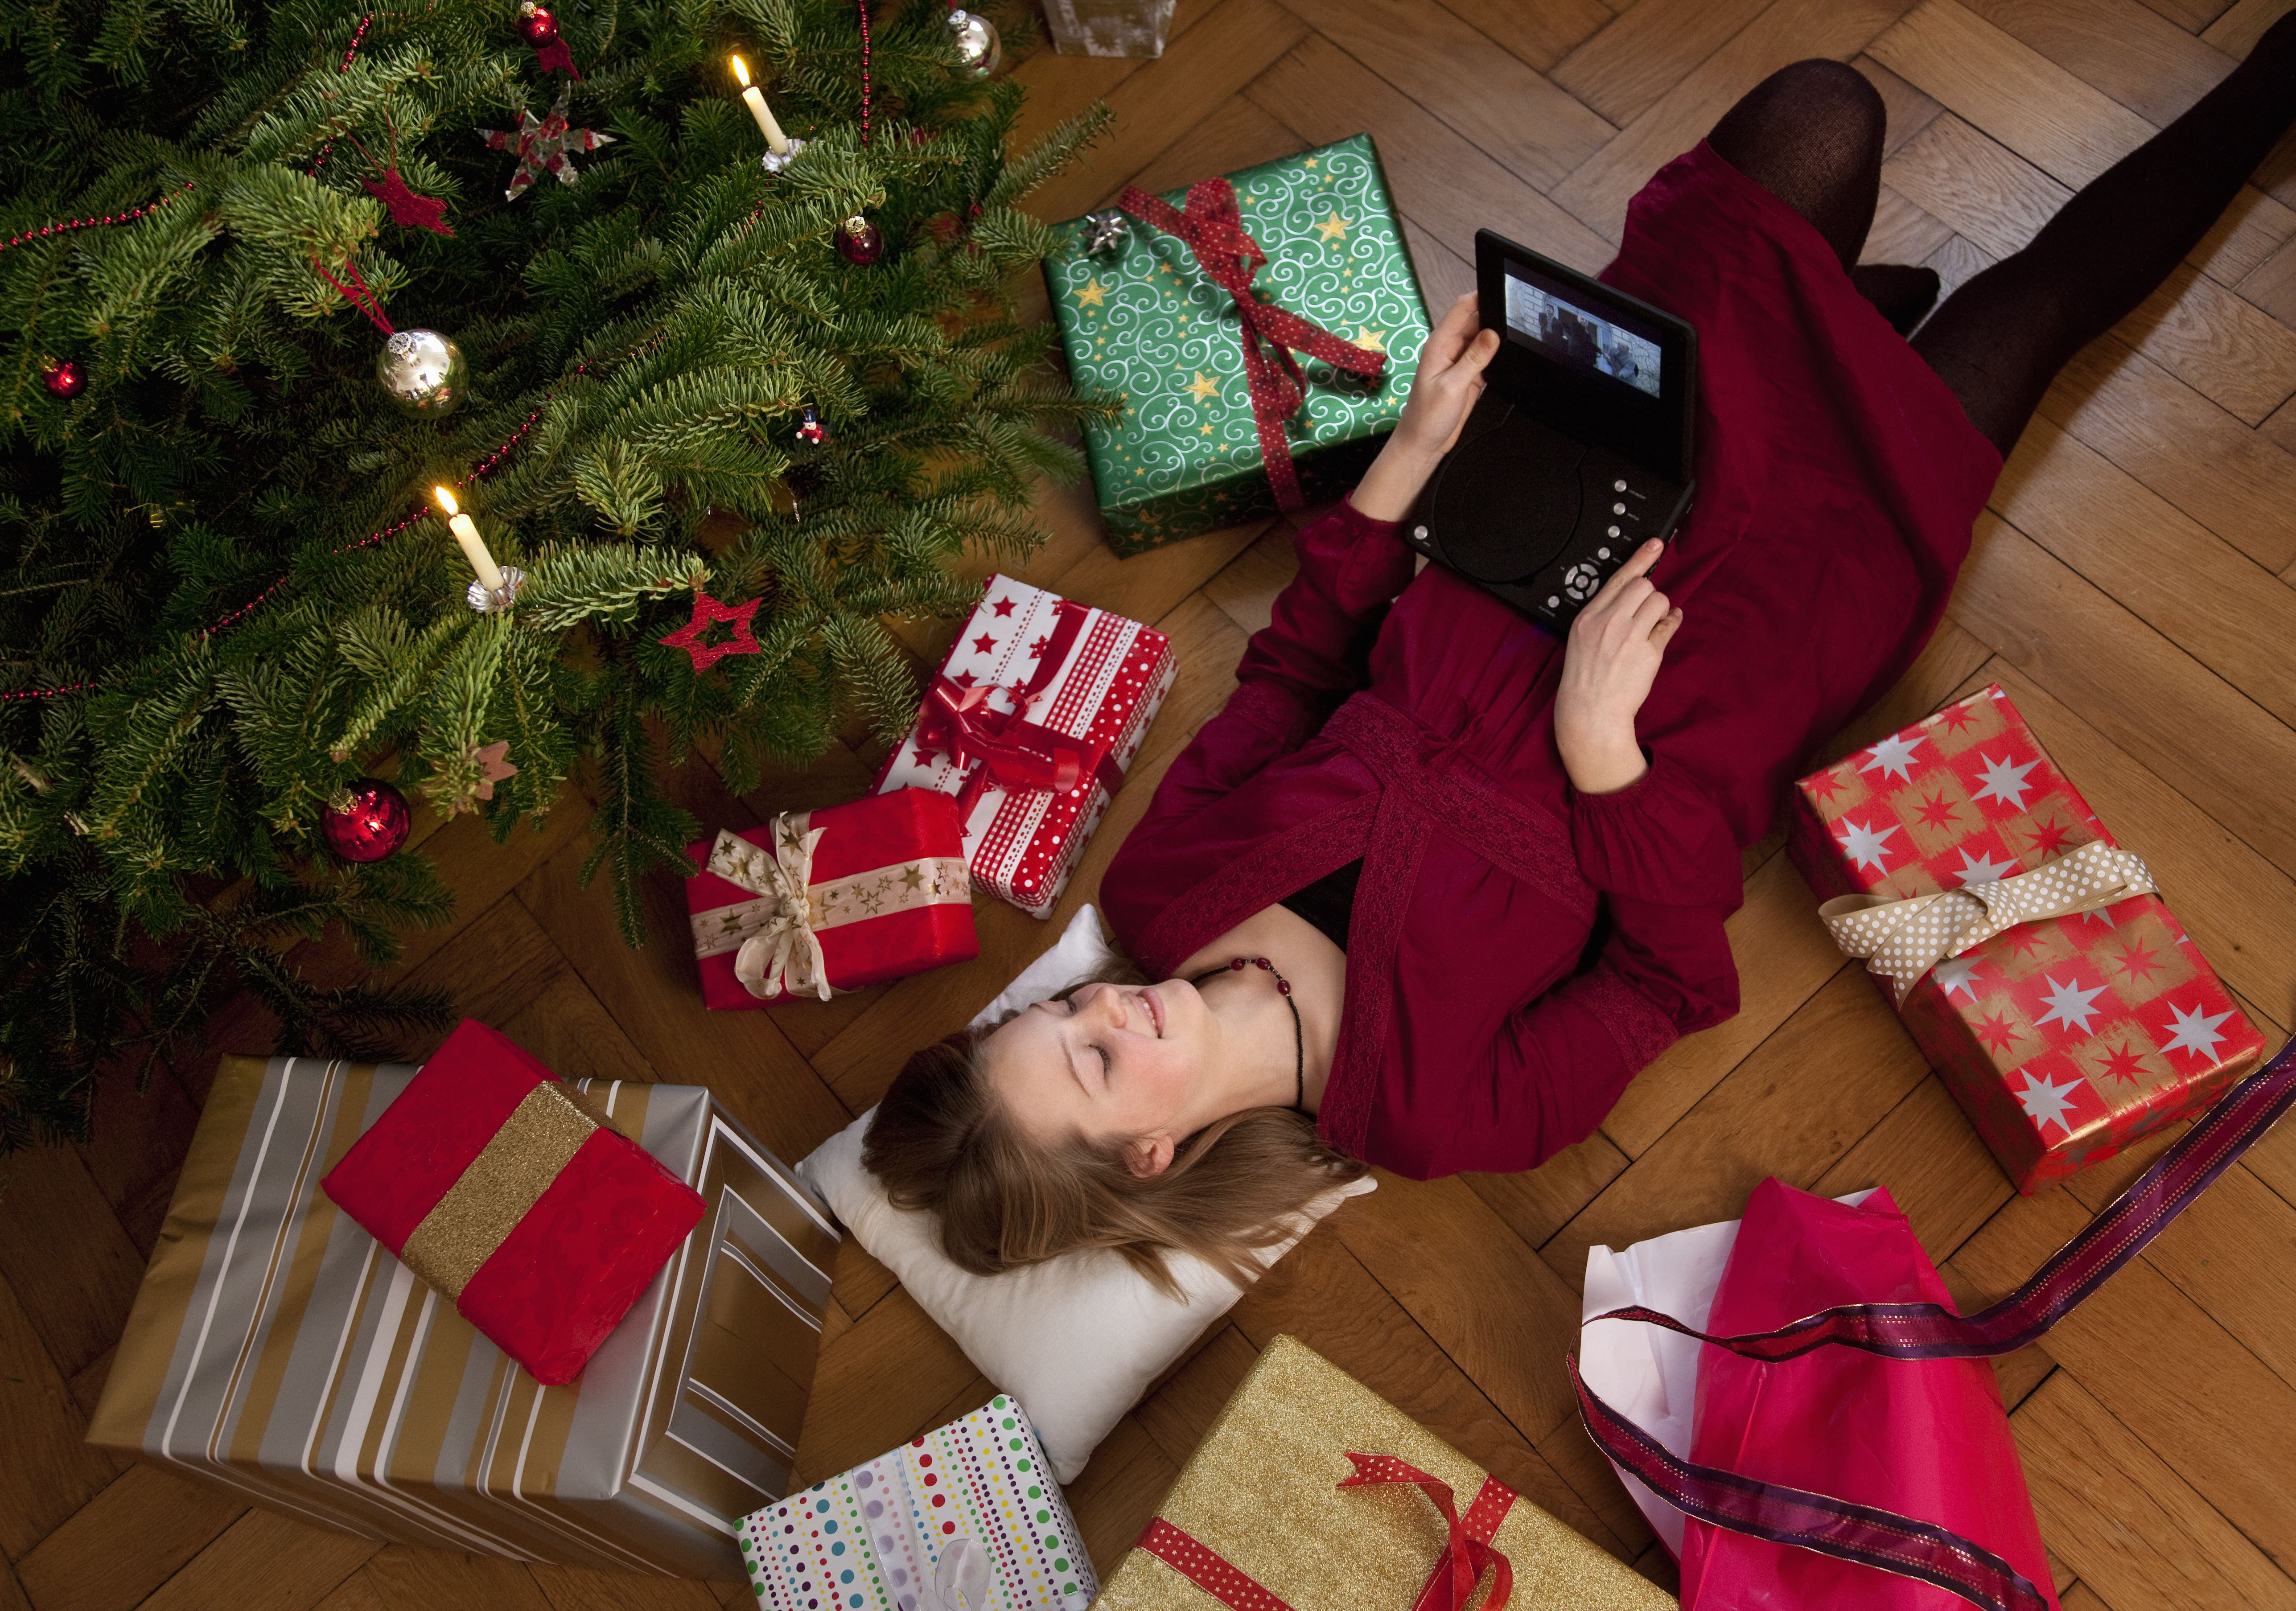 Find the Best Free Streaming Christmas Music Online